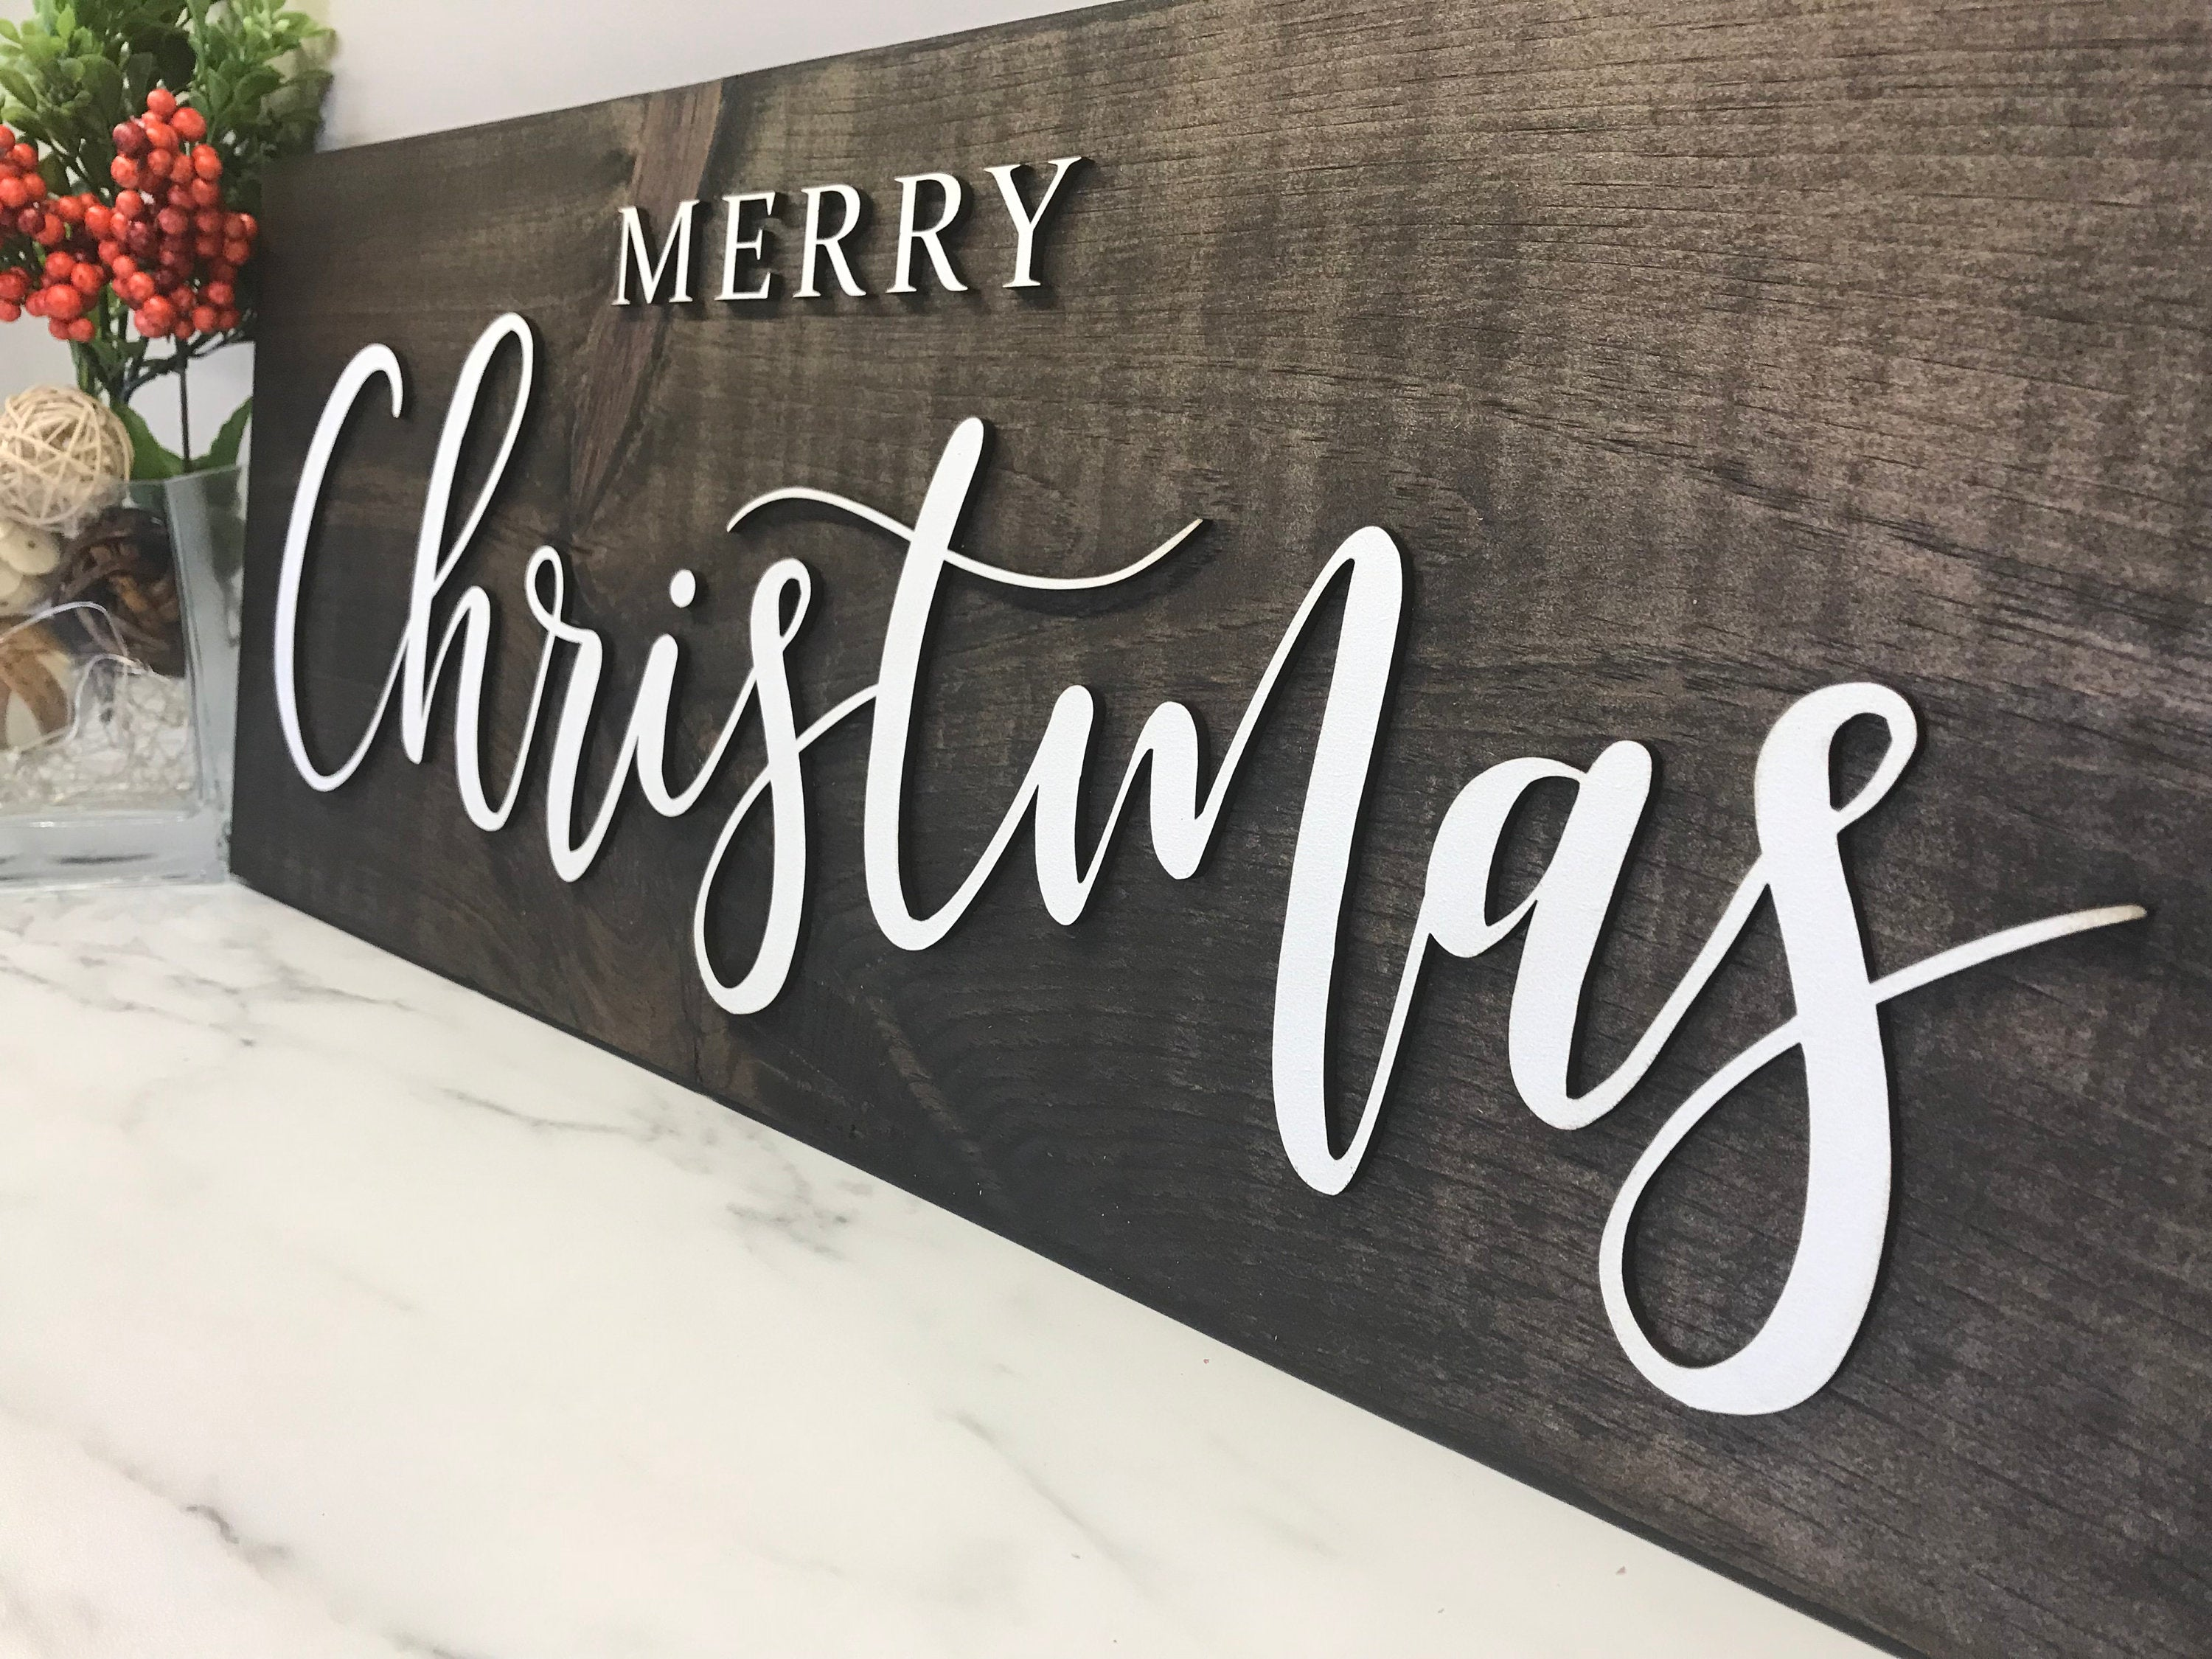 Merry Christmas Sign Rustic Wood Sign 3D Laser Cut Pine Wood Christmas Decor Home Decor